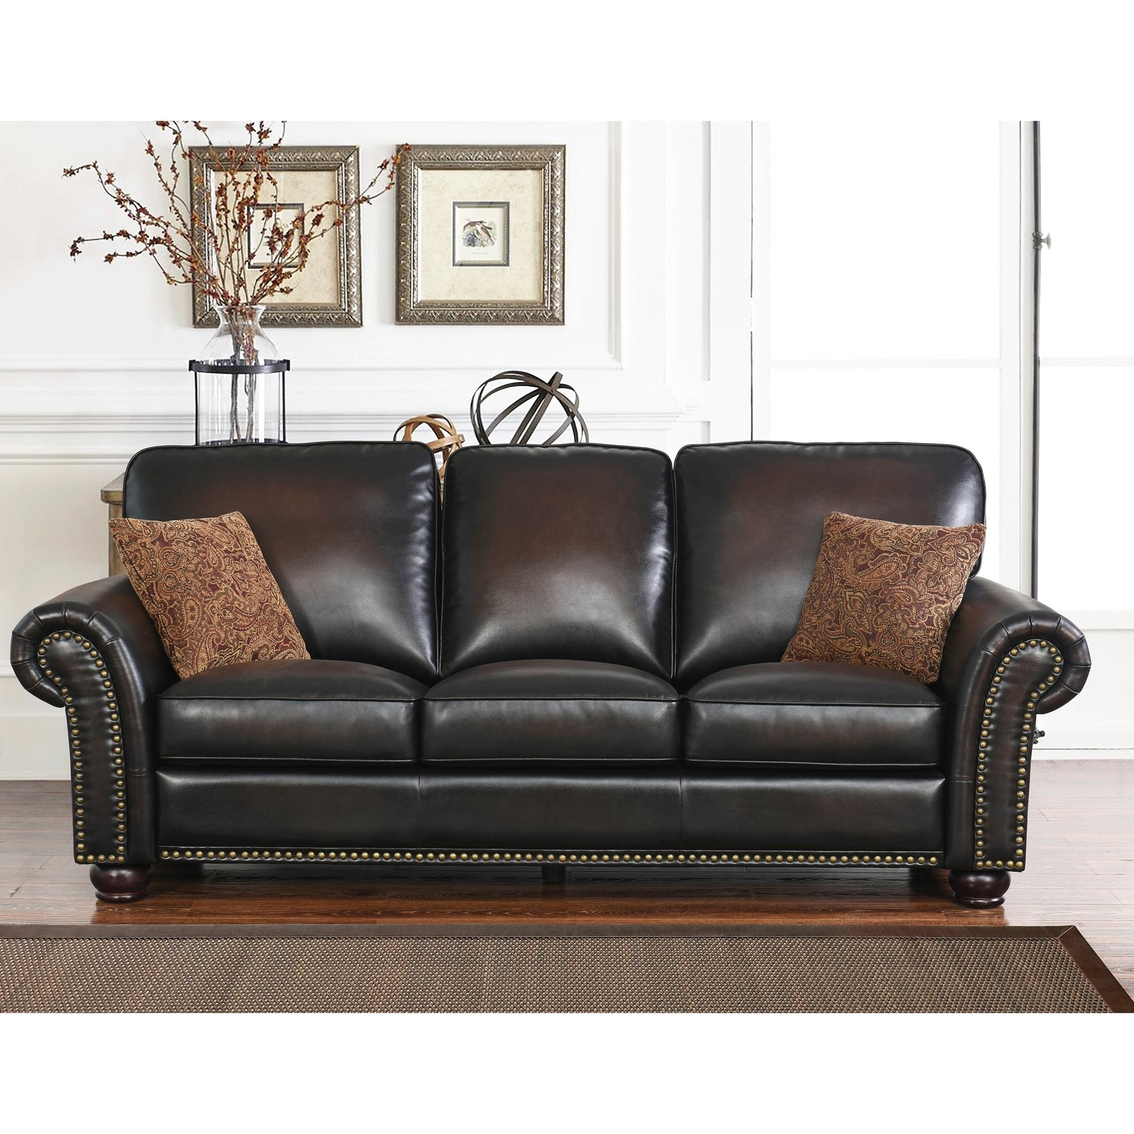 Terrific Abbyson Living Braxton 3 Pc Hand Rubbed Leather Sofa Set Caraccident5 Cool Chair Designs And Ideas Caraccident5Info